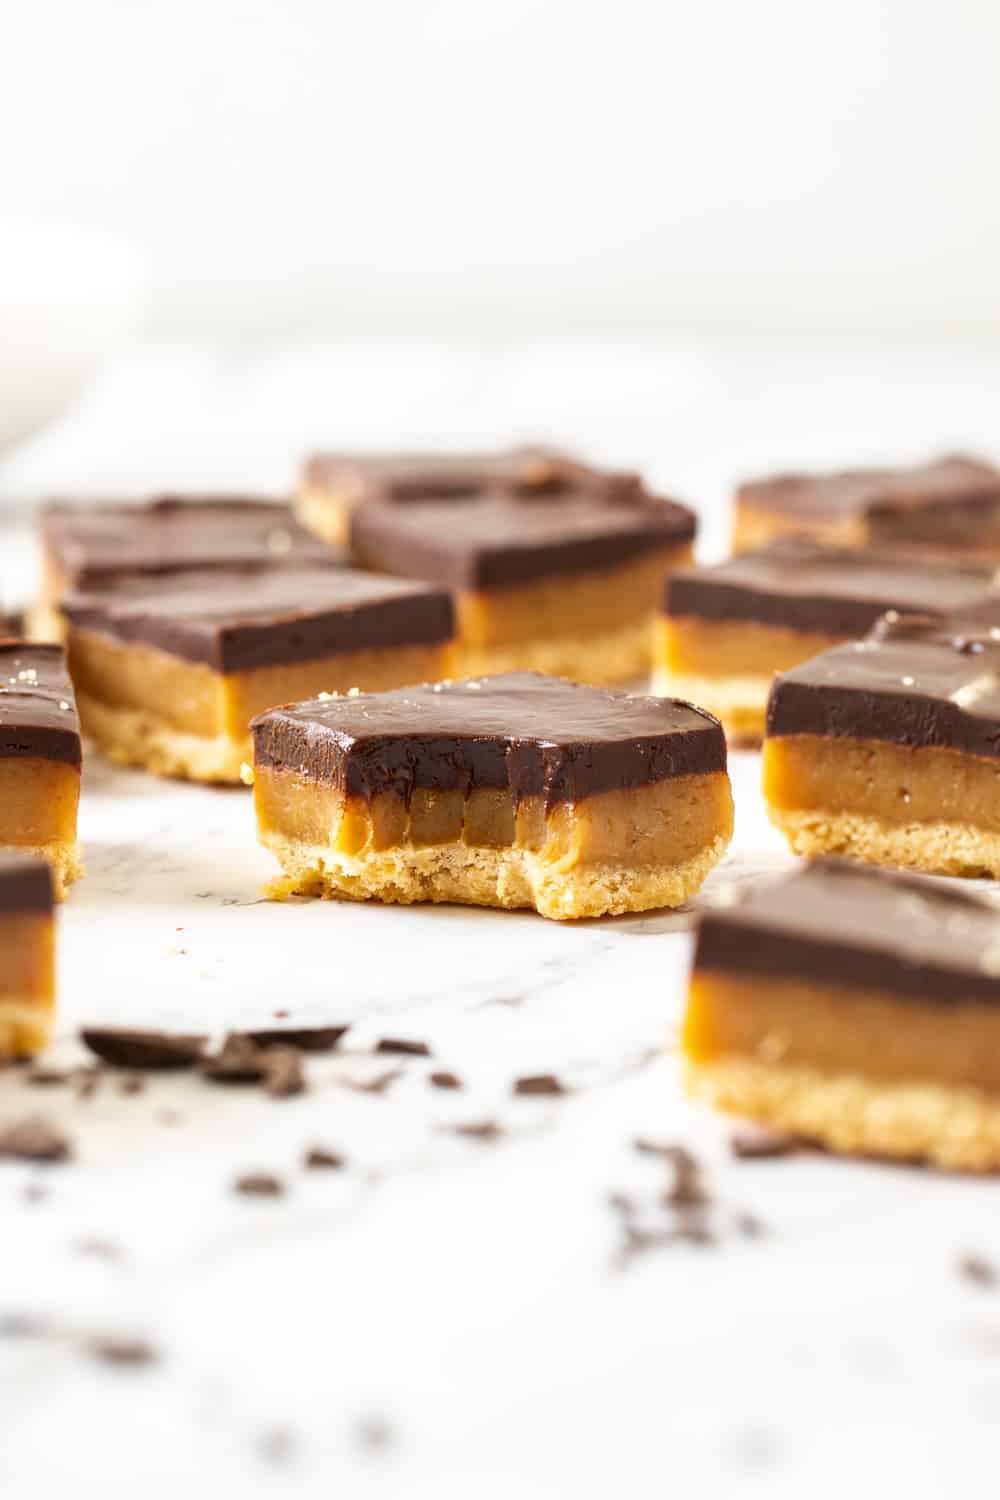 Closeup of a slice of millionaire shortbread with a bite mark in it